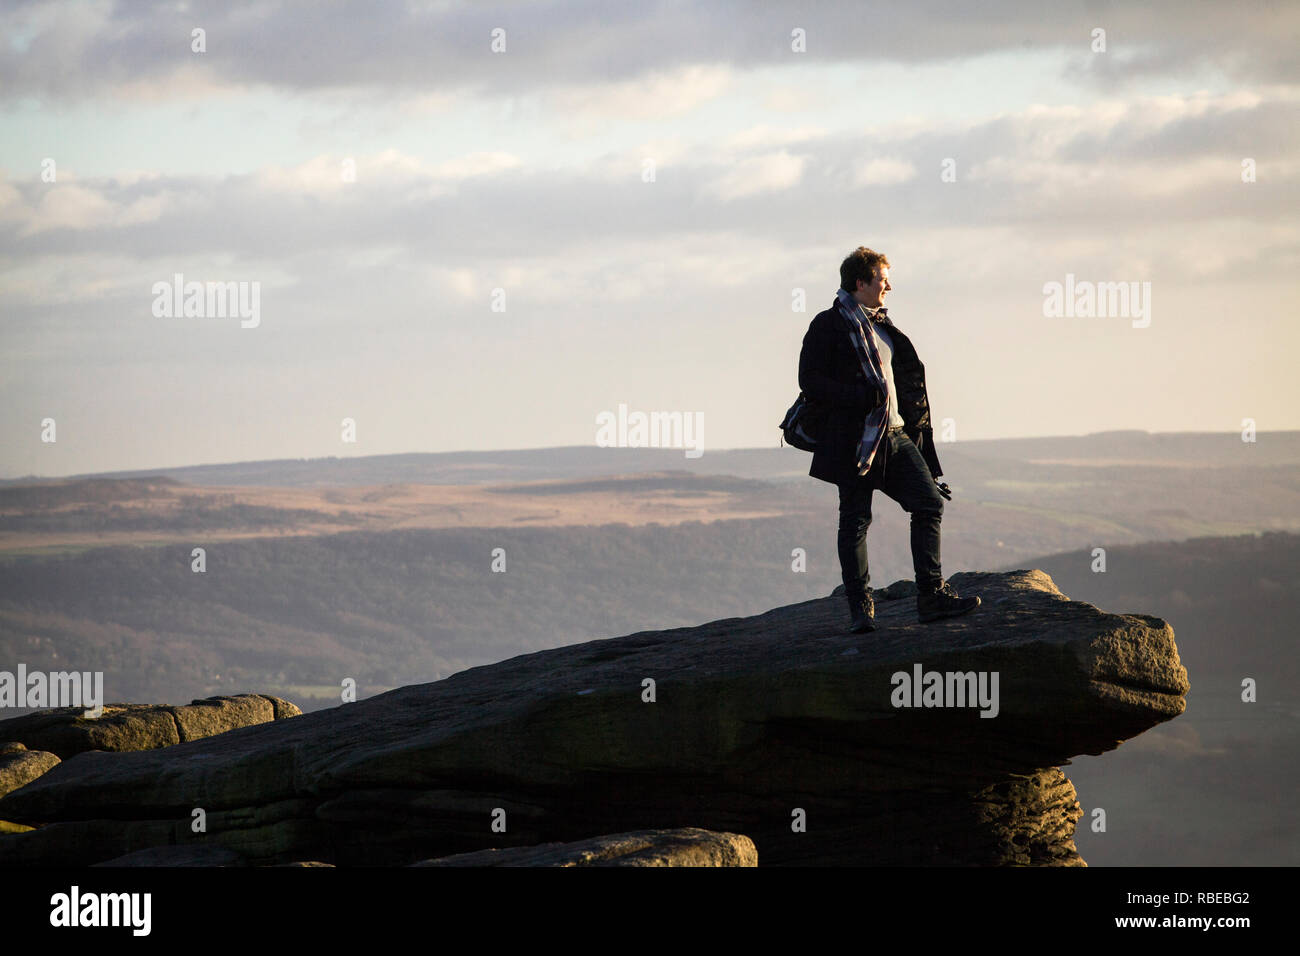 Young man enjoys a view in the Peak District, England - Stock Image